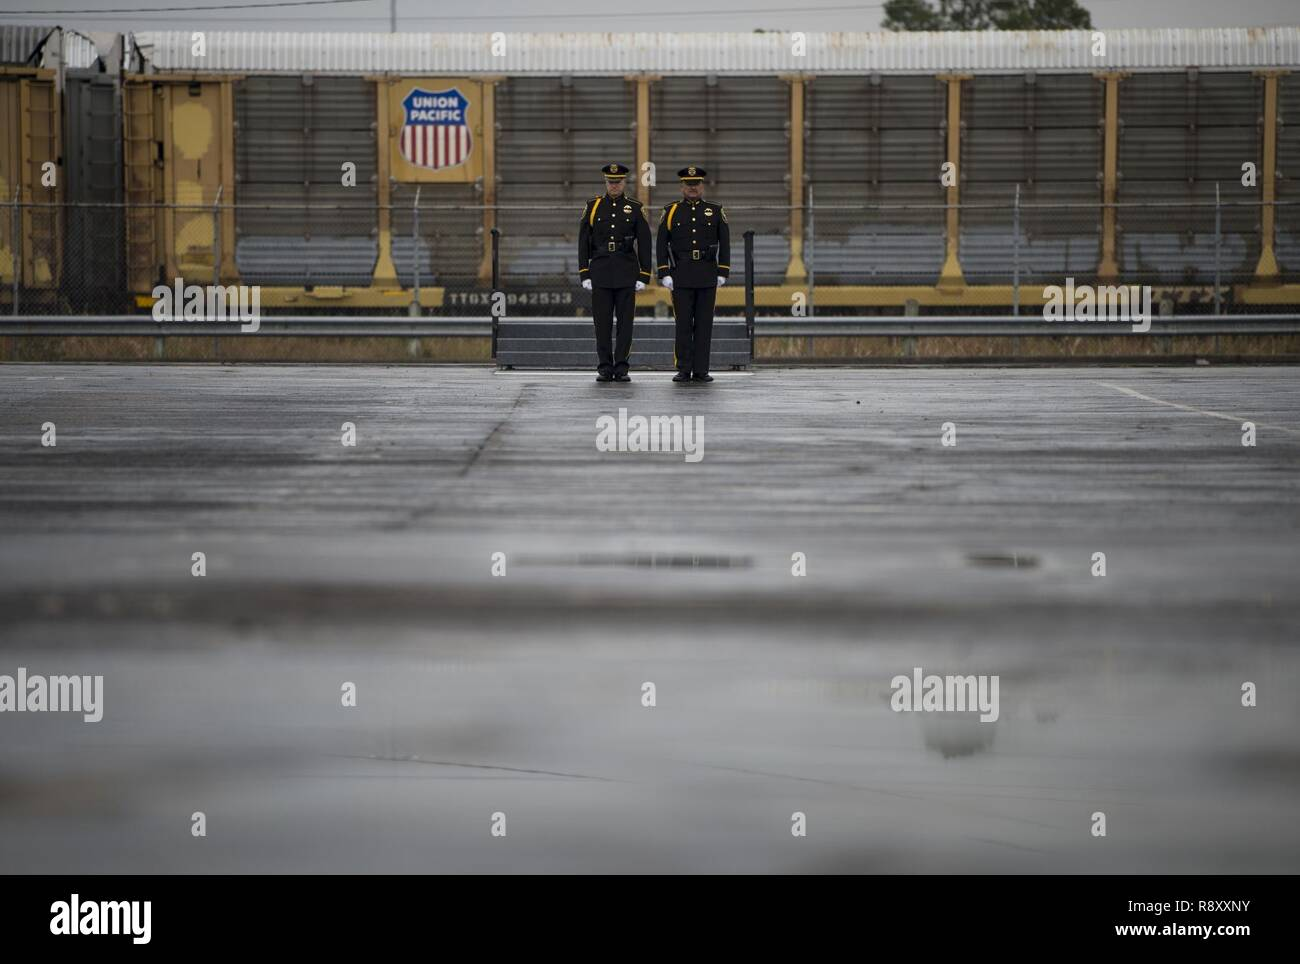 Two Union Pacific Police Honor Guardsmen standby as the funeral train, carrying the former President George H.W. Bush, heads to his final resting place after a departure ceremony at Union Pacific Westfield Auto Facility, Spring, Texas, Dec. 6, 2018. The funeral car was pulled by the 4141 locomotive and carried Bush's remains to College Station, Texas. Nearly 4,000 military and civilian personnel from across all branches of the U.S. armed forces, including Reserve and National Guard components, provided ceremonial support during the state funeral of George H.W. Bush, the 41st President of the U Stock Photo